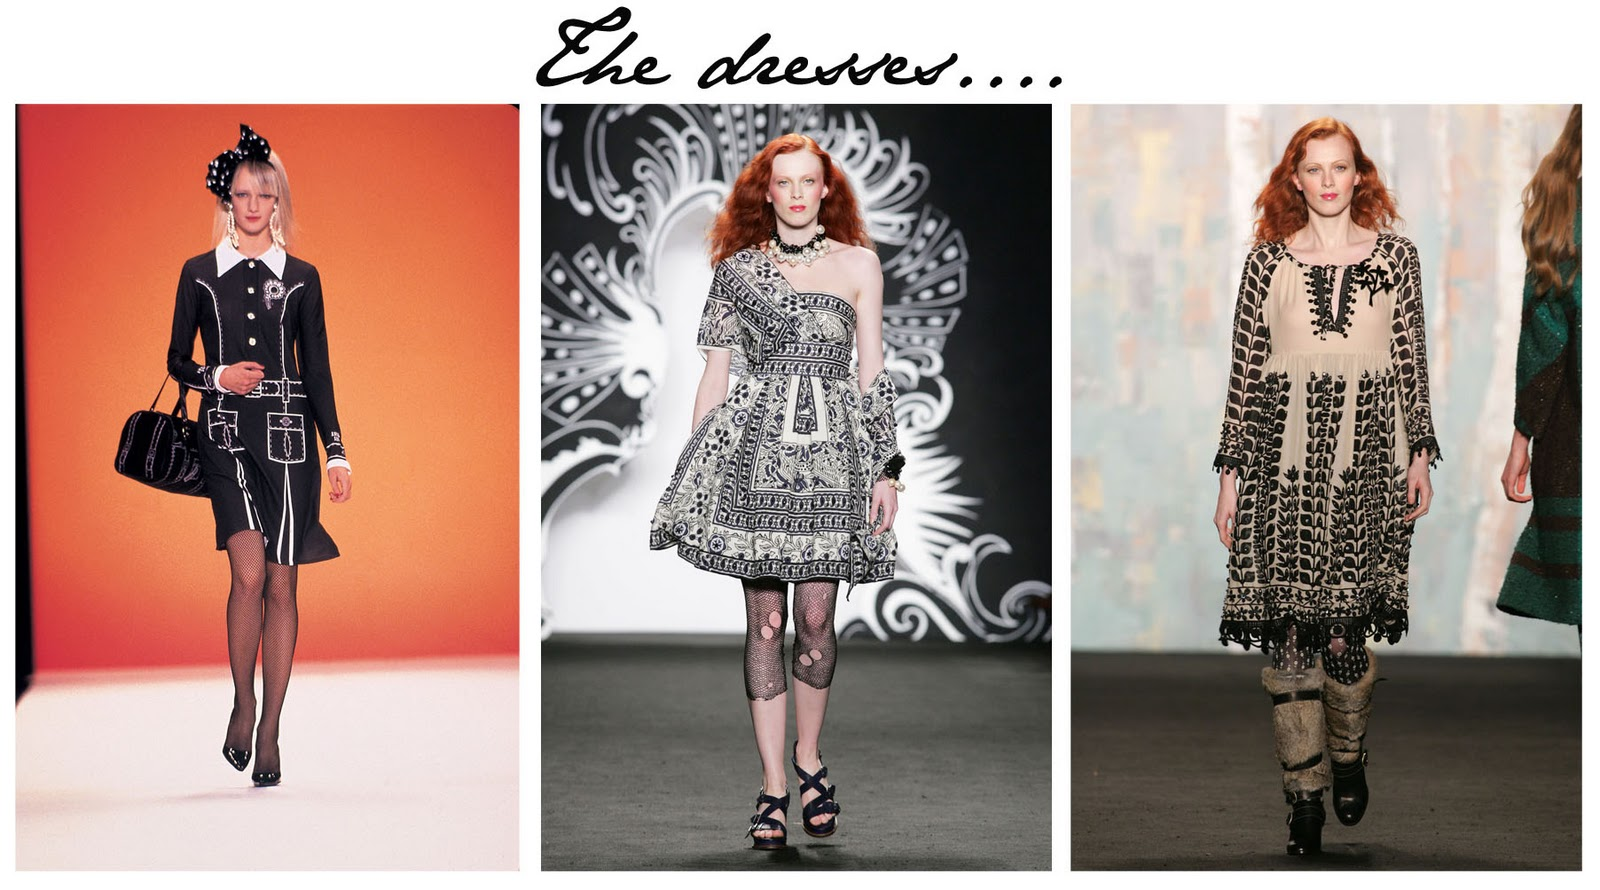 Anna Sui had this to say about